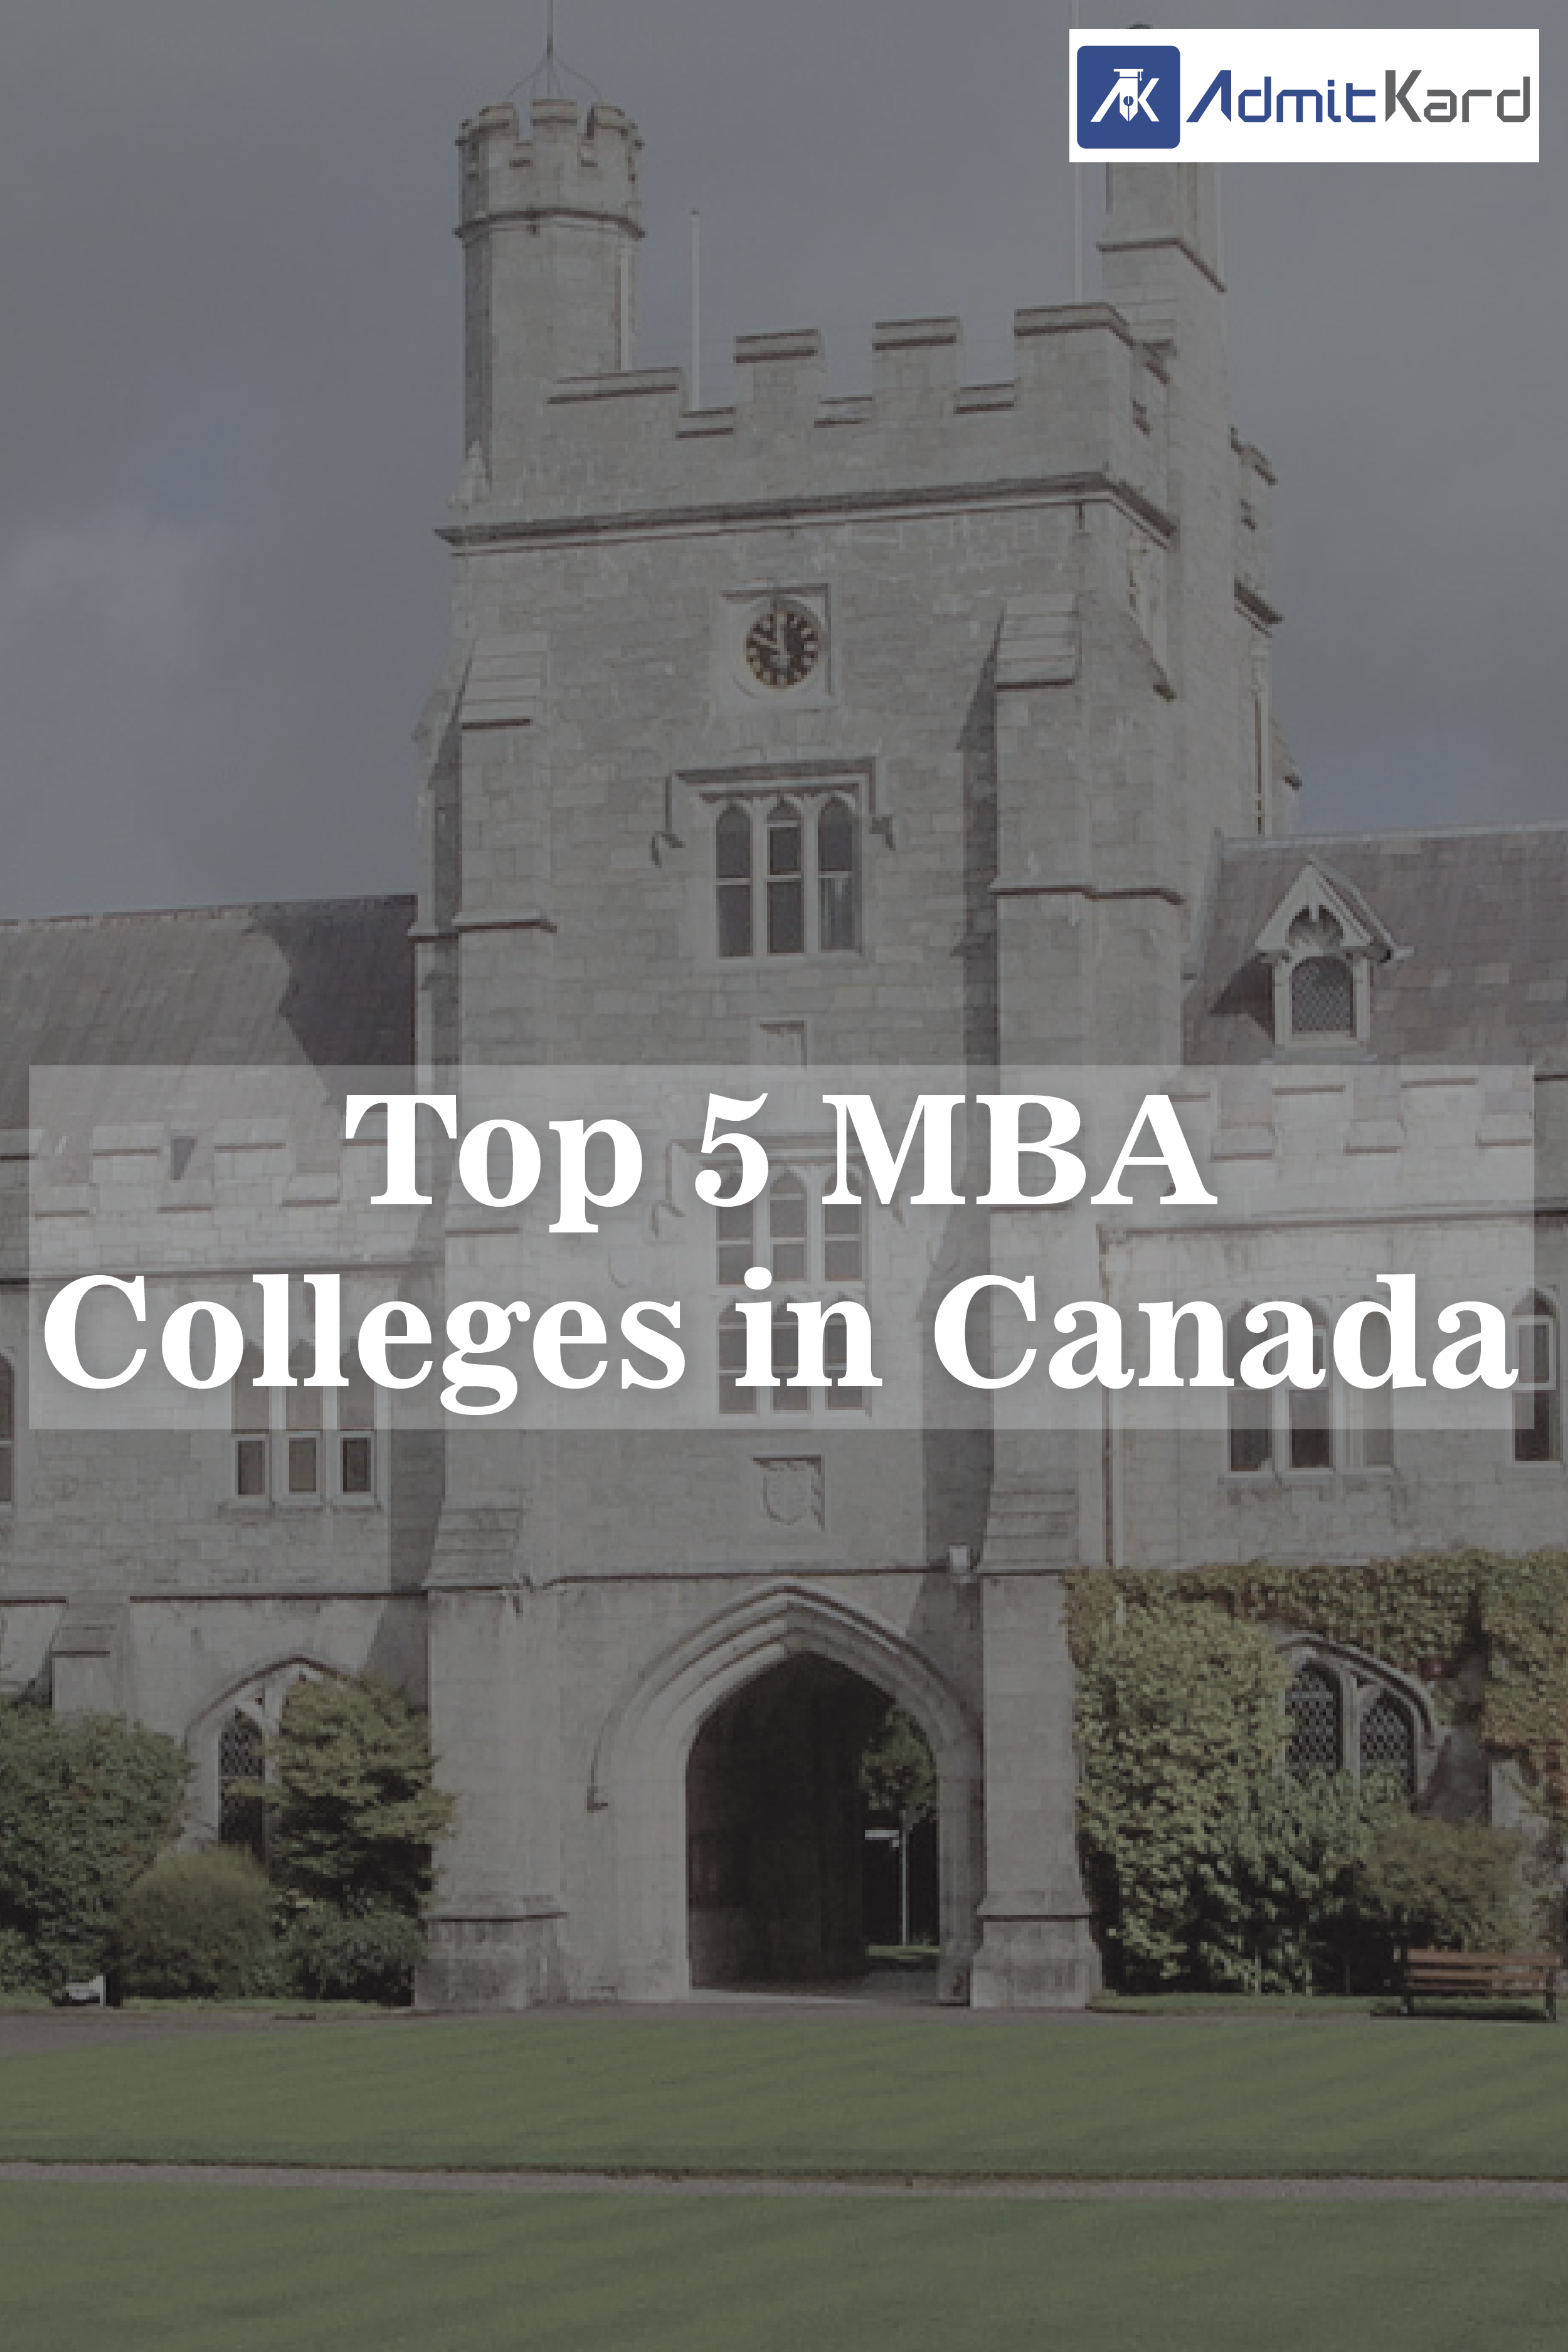 Study Mba In Canada Learn From The Best Universities Of The World With Images Best University Canada Mba